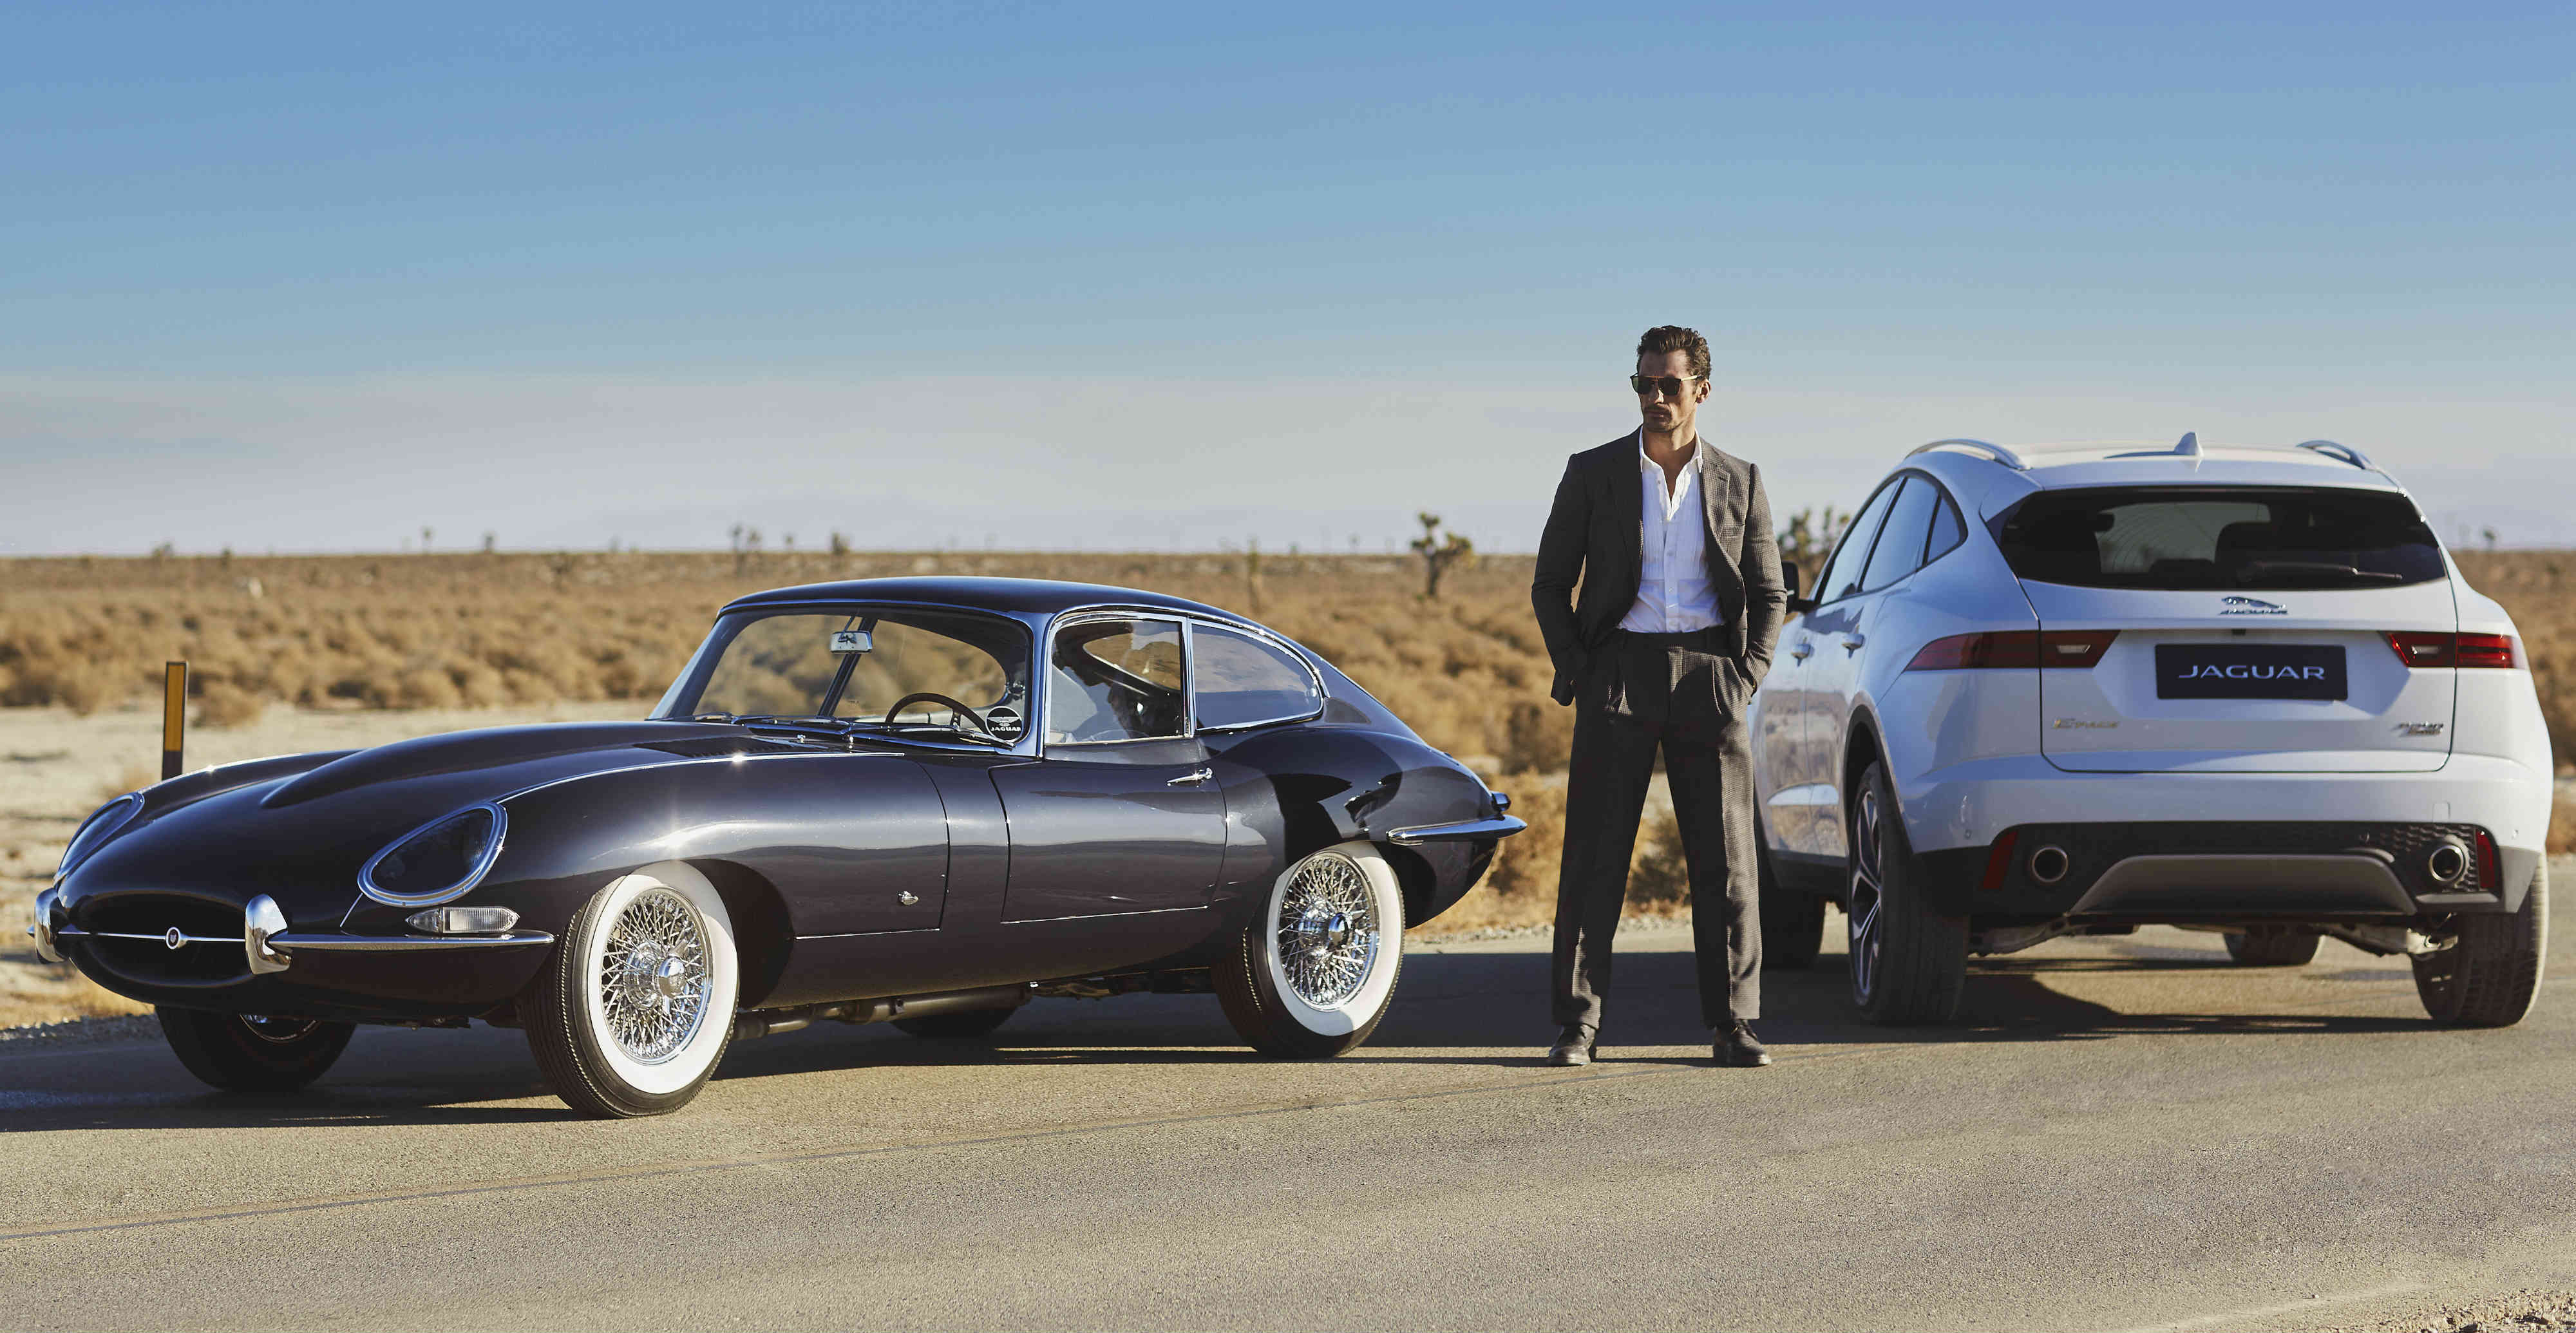 Best Awd Sports Cars >> Jaguar desert photoshoot with E-Pace, E-Type and David ...